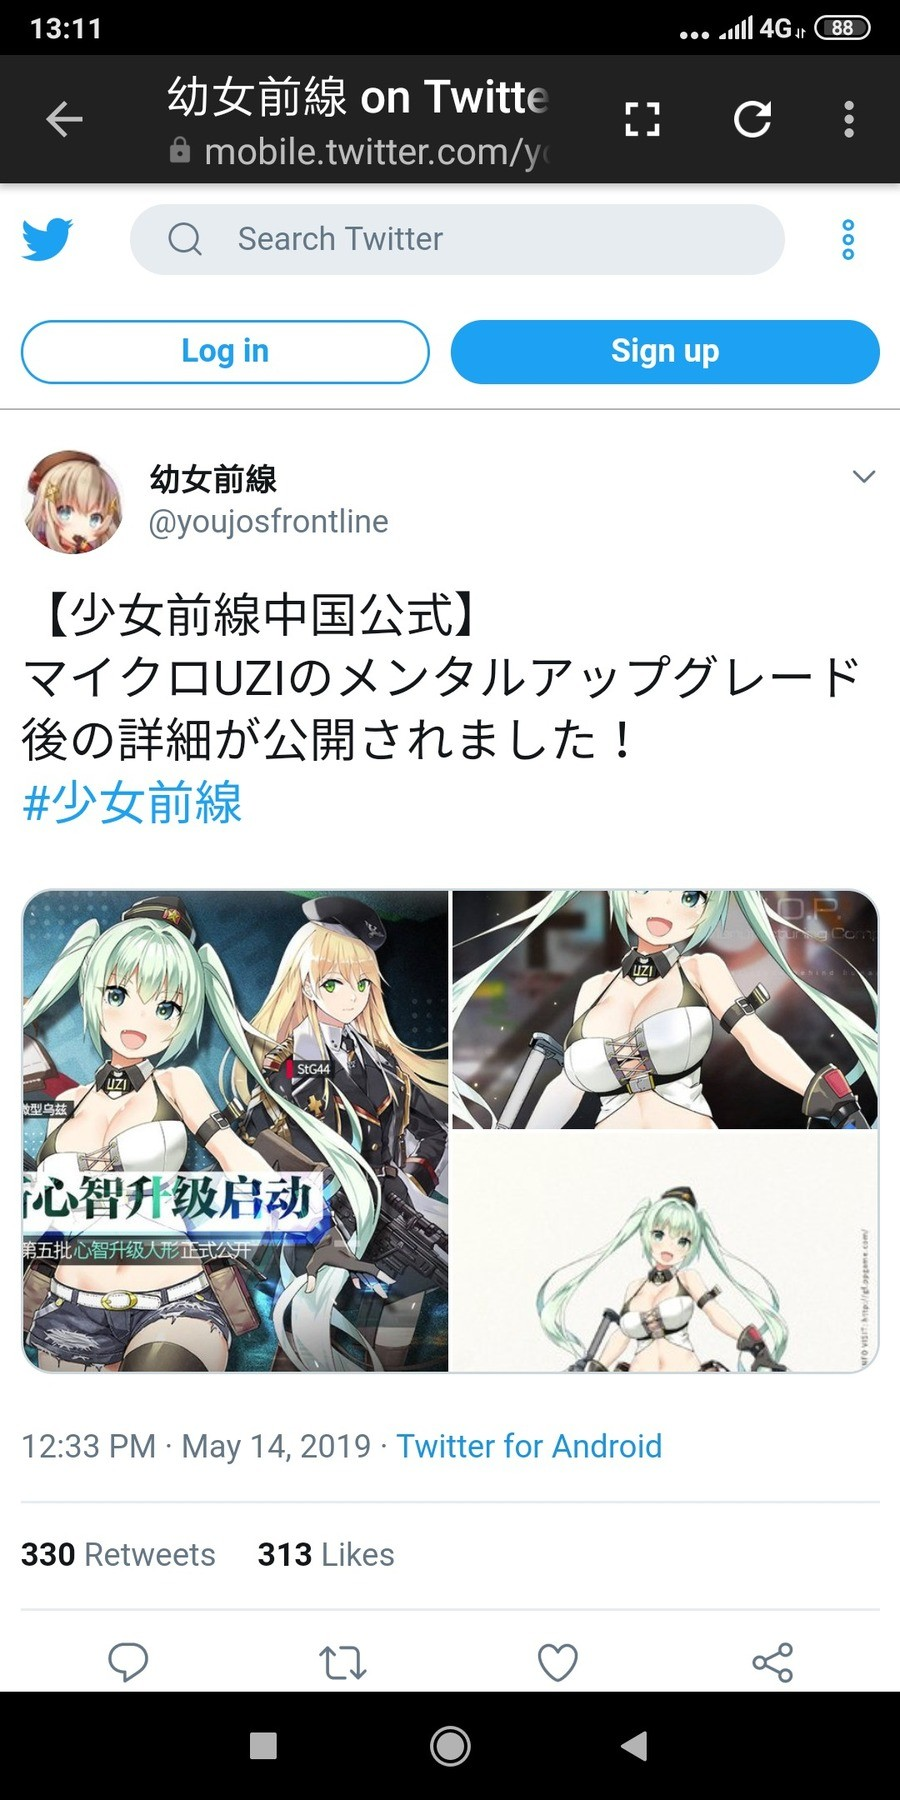 Upcoming doll upgrades.. join list: GirlsFrontline (580 subs)Mention Clicks: 105075Msgs Sent: 382748Mention History.. Oml STG-44 getting some love. I've always loved her appearance.